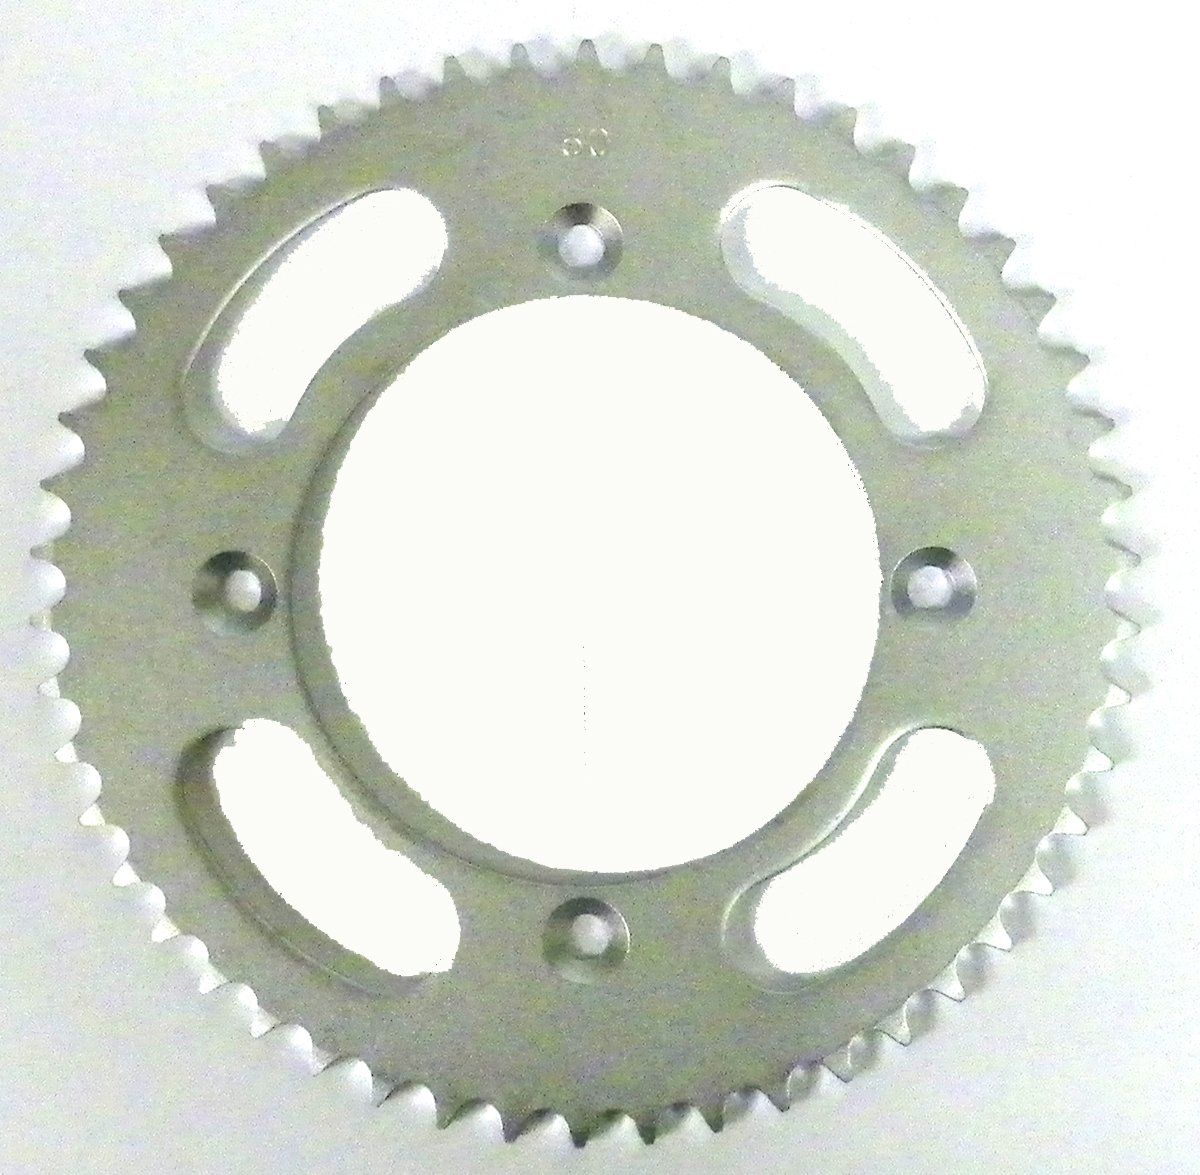 Honda Steel Rear Sprocket Moto-X 80 CR 1985-2002 / 80 CR-RB / 85 CR / 85 CR-RB / 150 CRF-R / 150 CRF-RB 50 Teeth RSH-027-50 OEM# 41201-GBF-K00 Years in description Water Sport Manufacturing